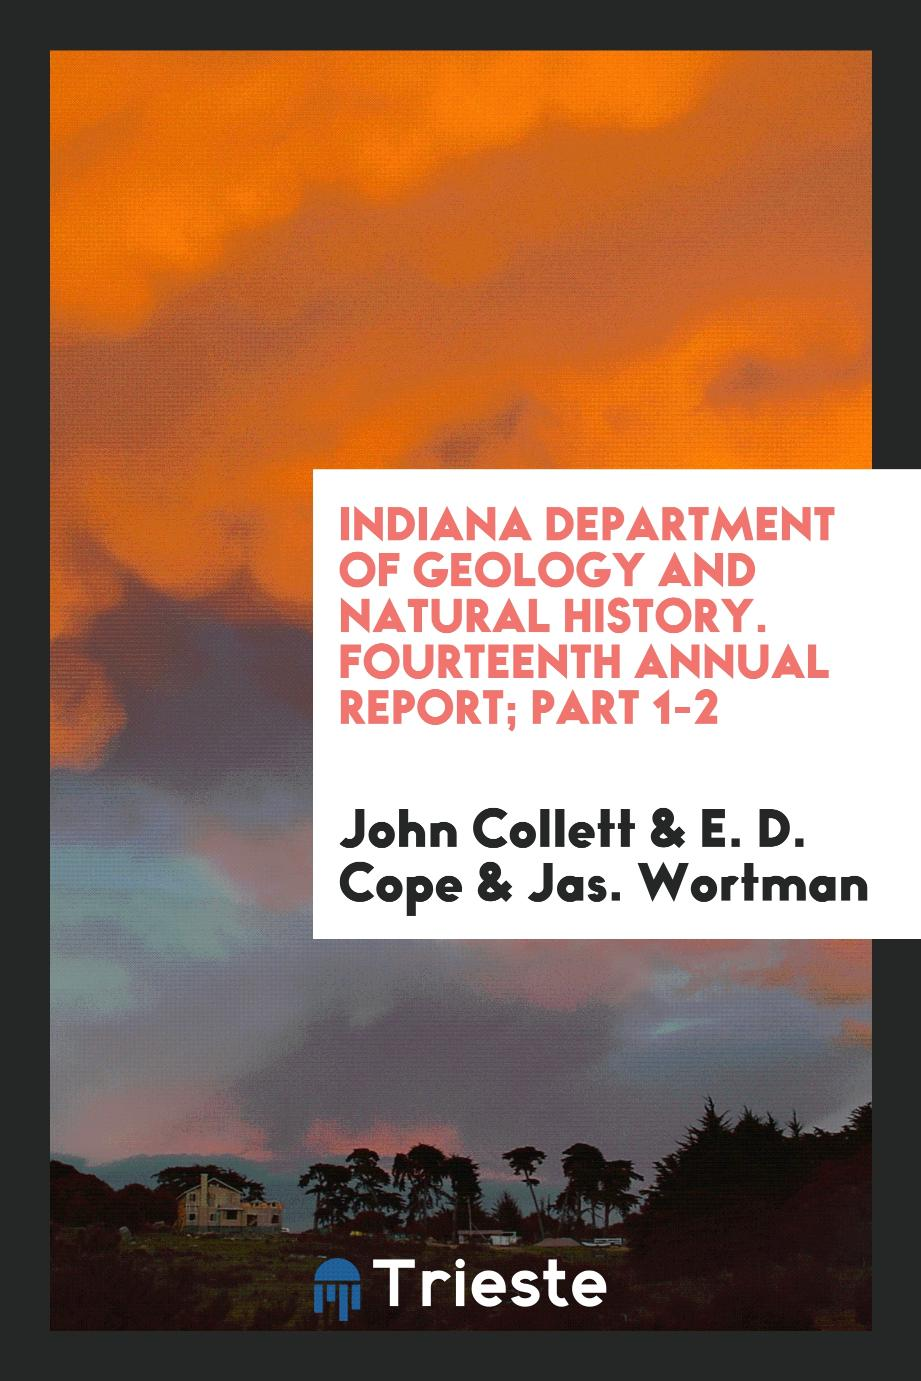 Indiana Department of Geology and Natural History. Fourteenth Annual Report; Part 1-2